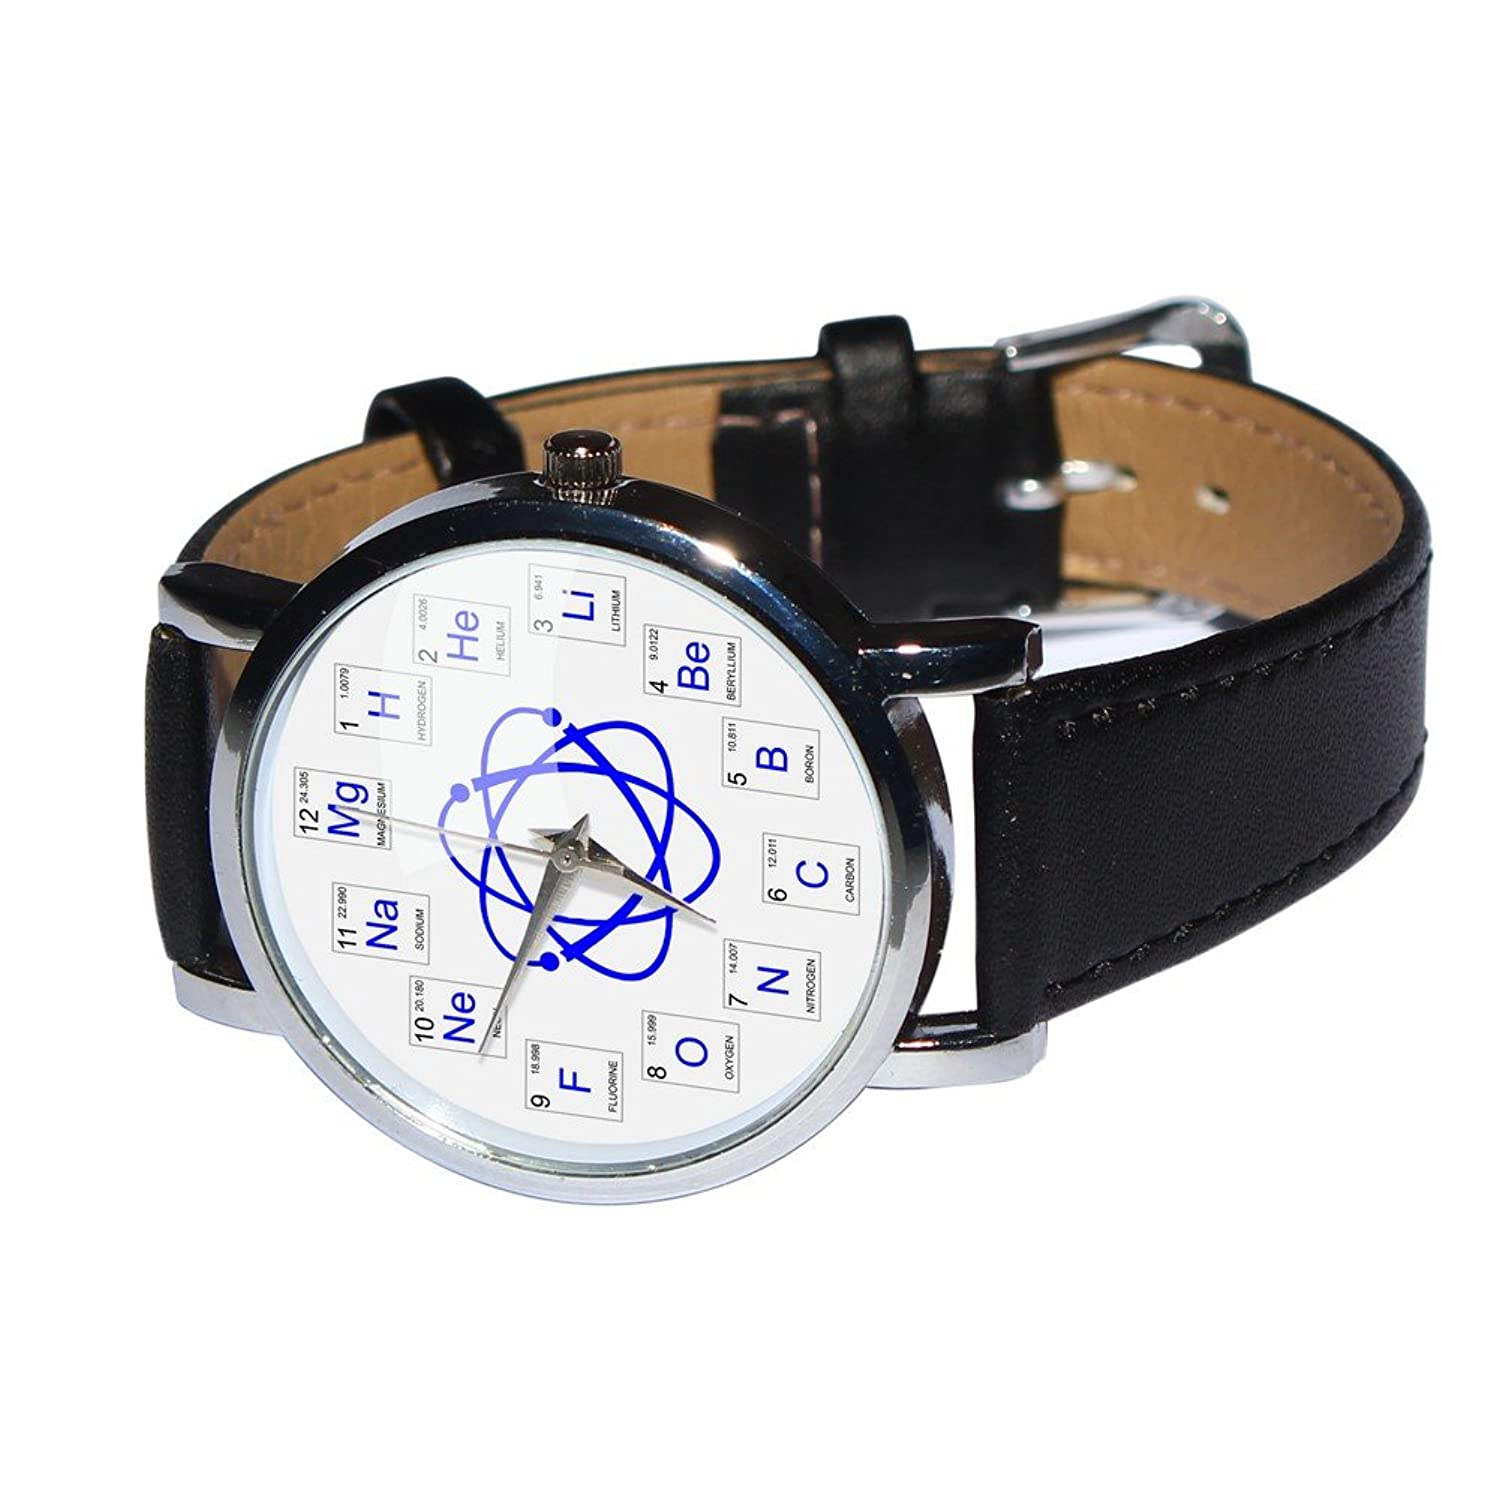 Amazon atomic elements watch showing chemical elements from the amazon atomic elements watch showing chemical elements from the periodic table genuine leather strap watches urtaz Images